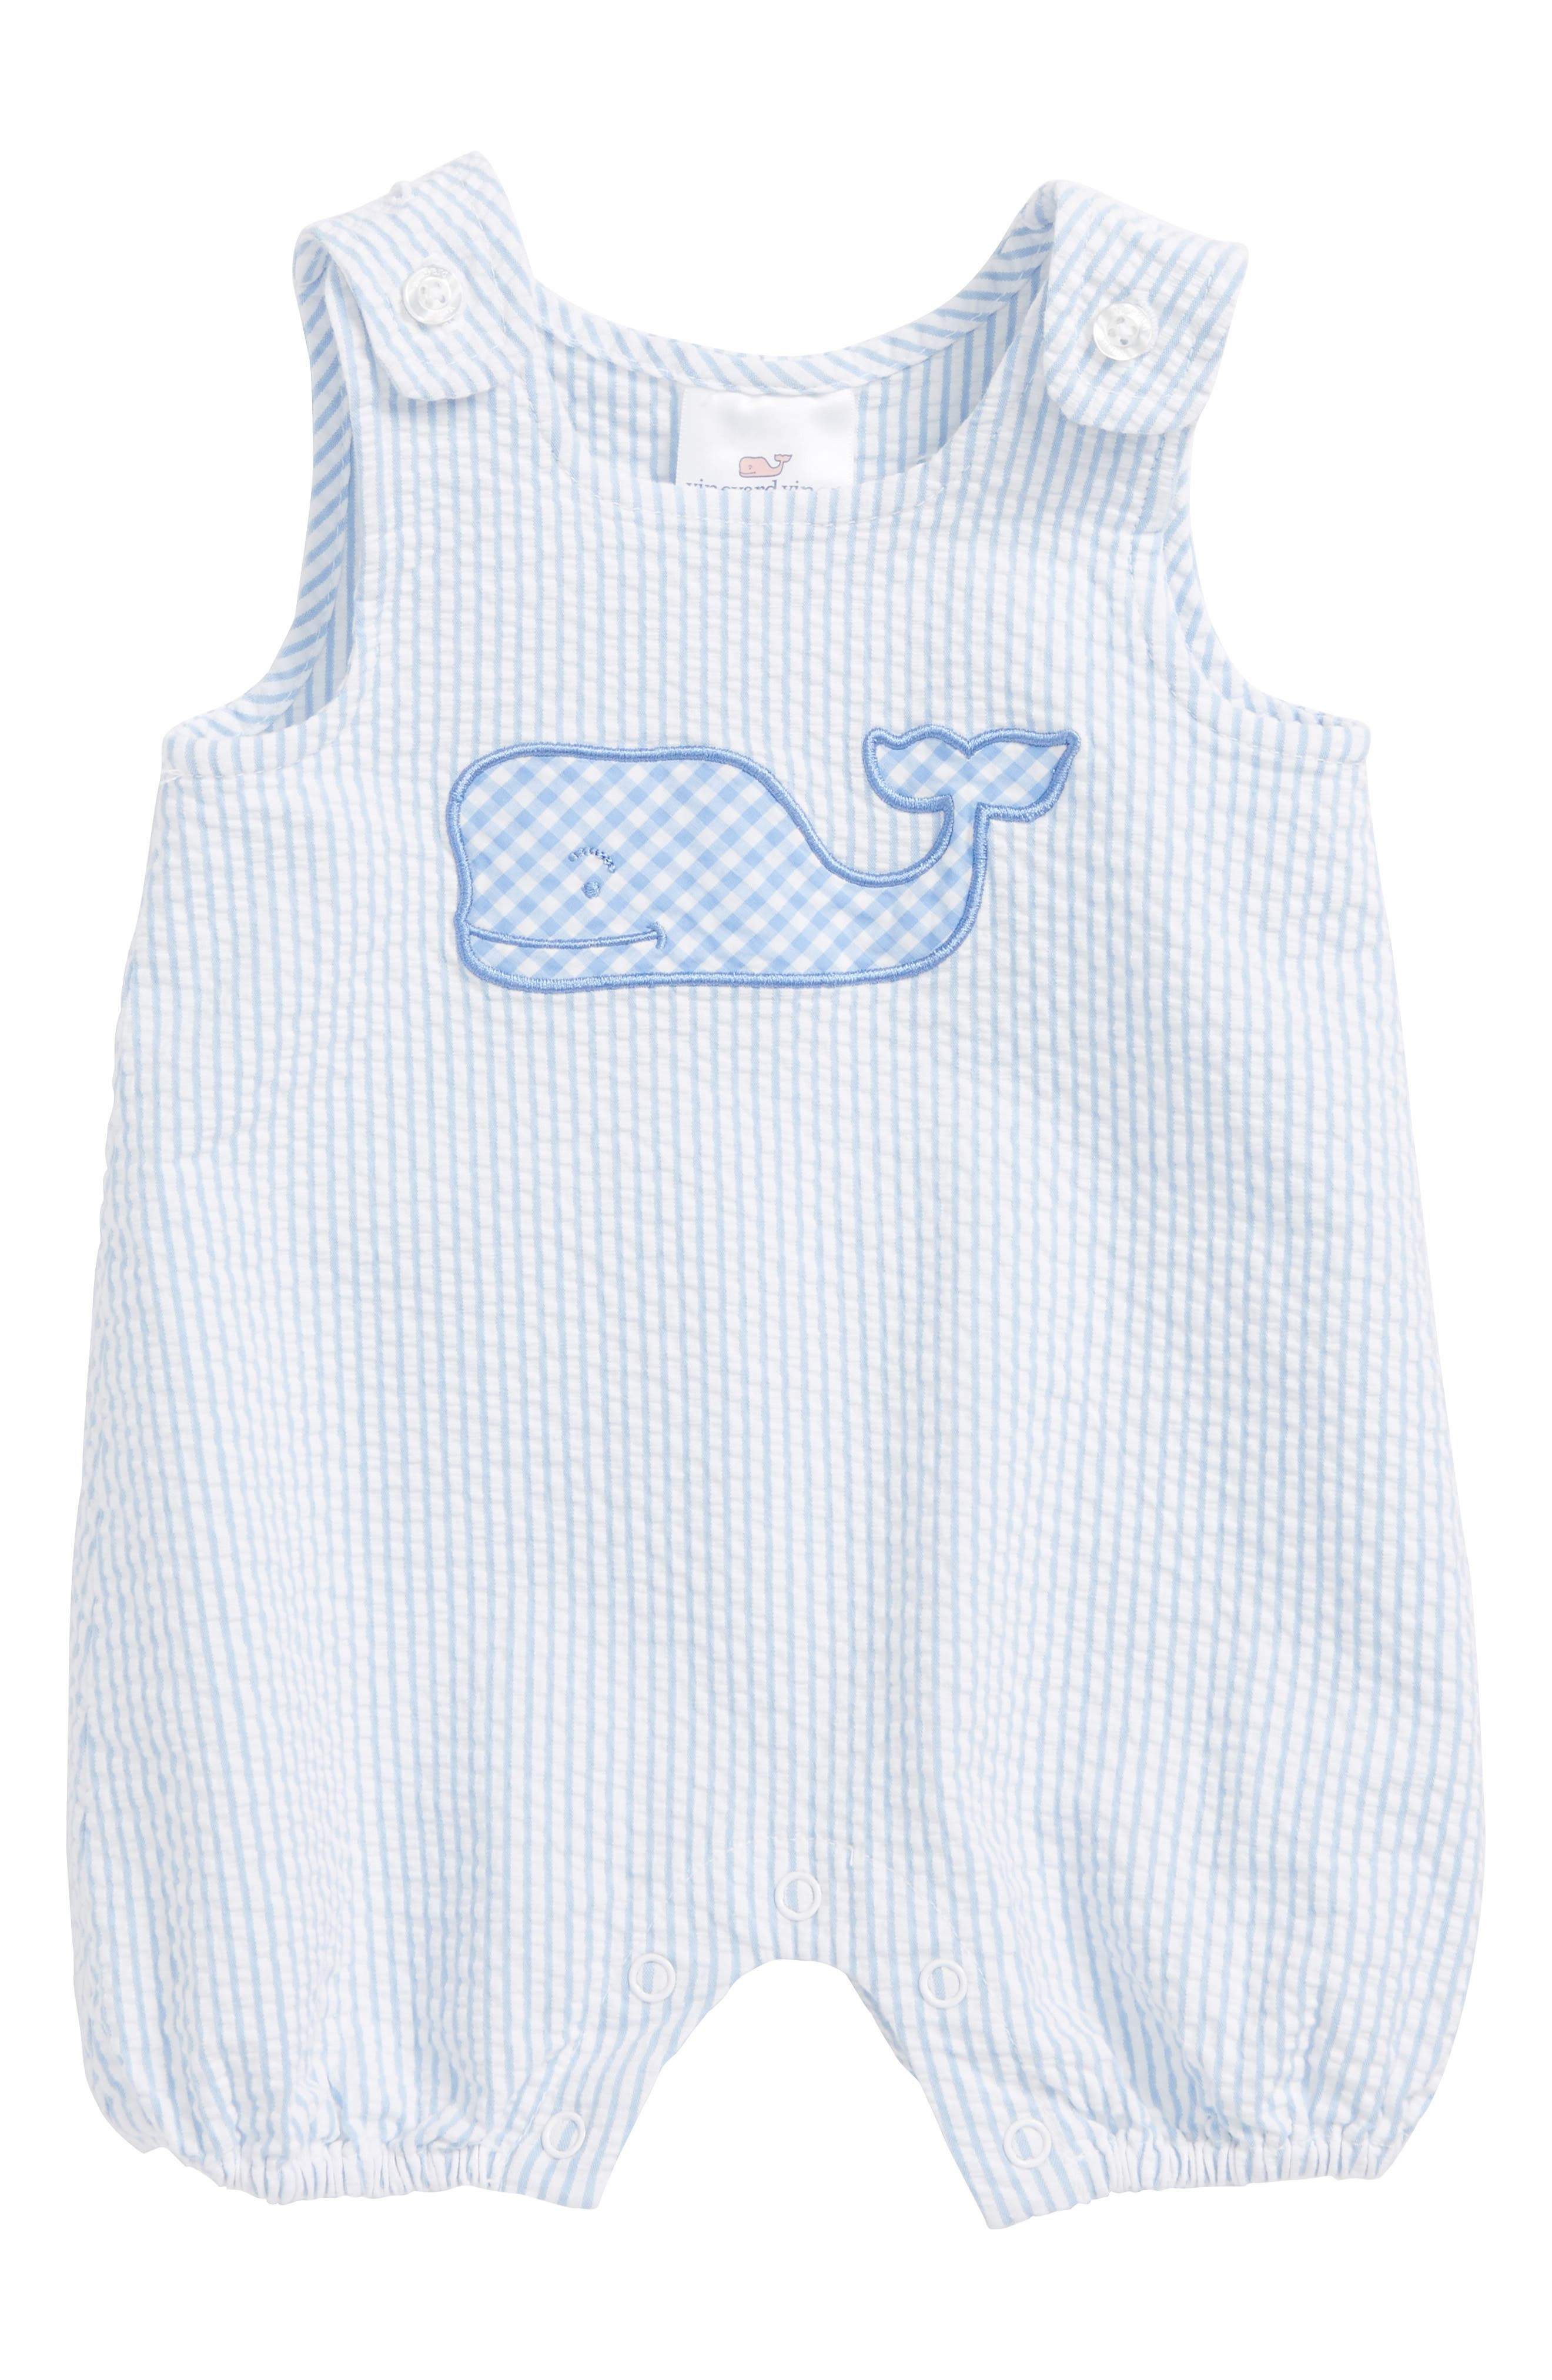 Alternate Image 1 Selected - vineyard vines Seersucker Jon Jon Romper (Baby Boys)